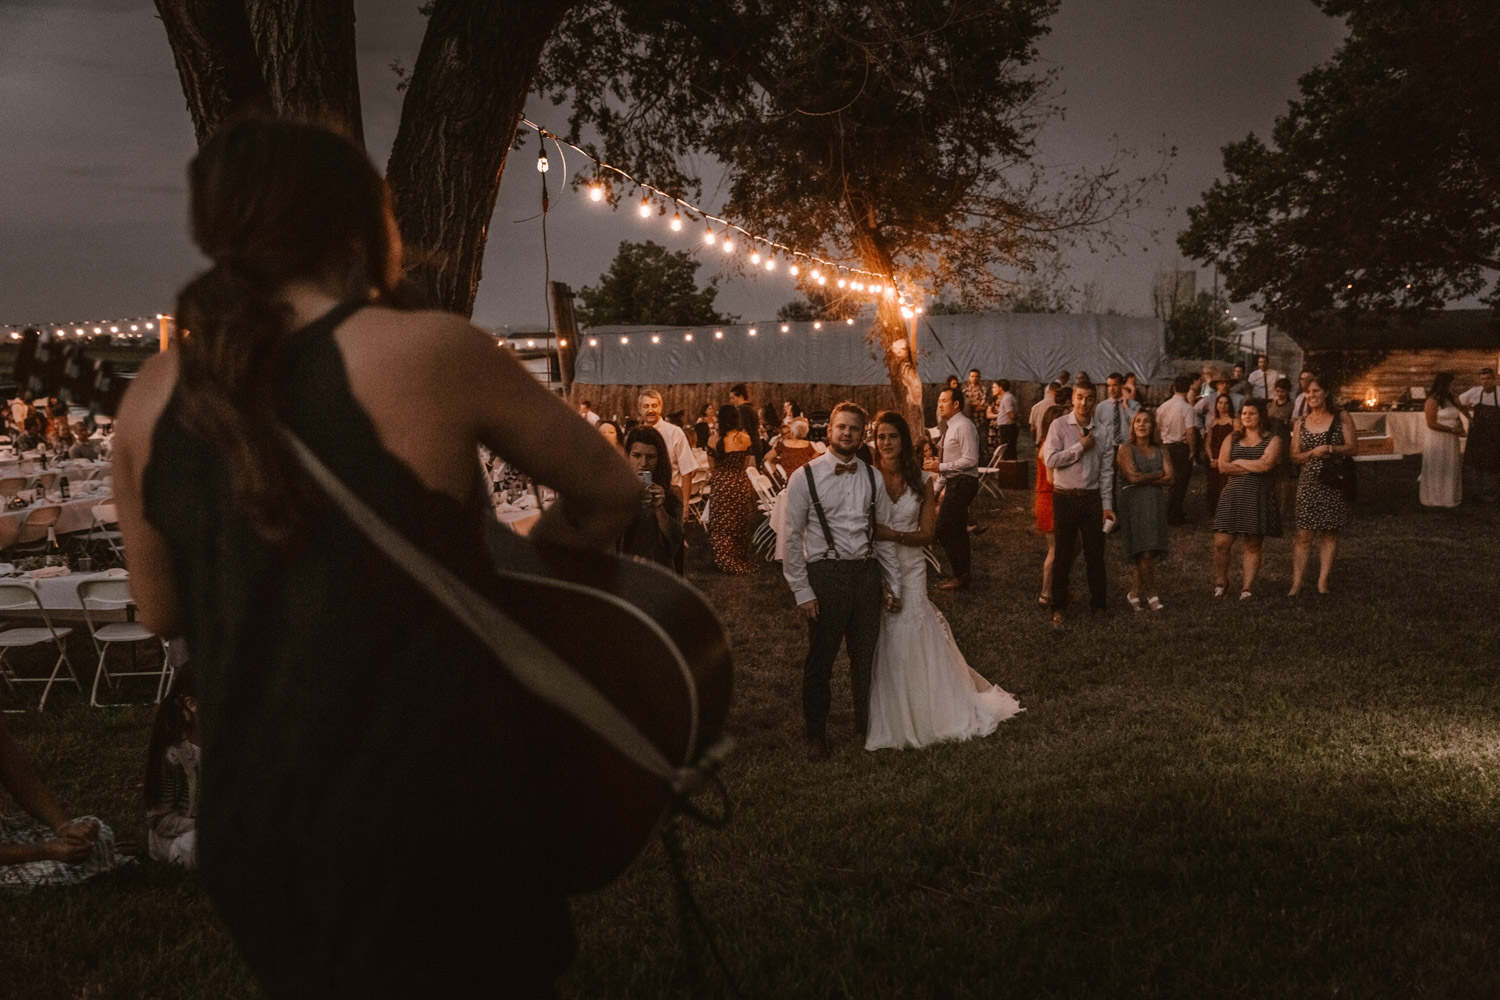 Swiss destination wedding photographer Colorado Denver Vintage Wedding barn wedding light bulbs